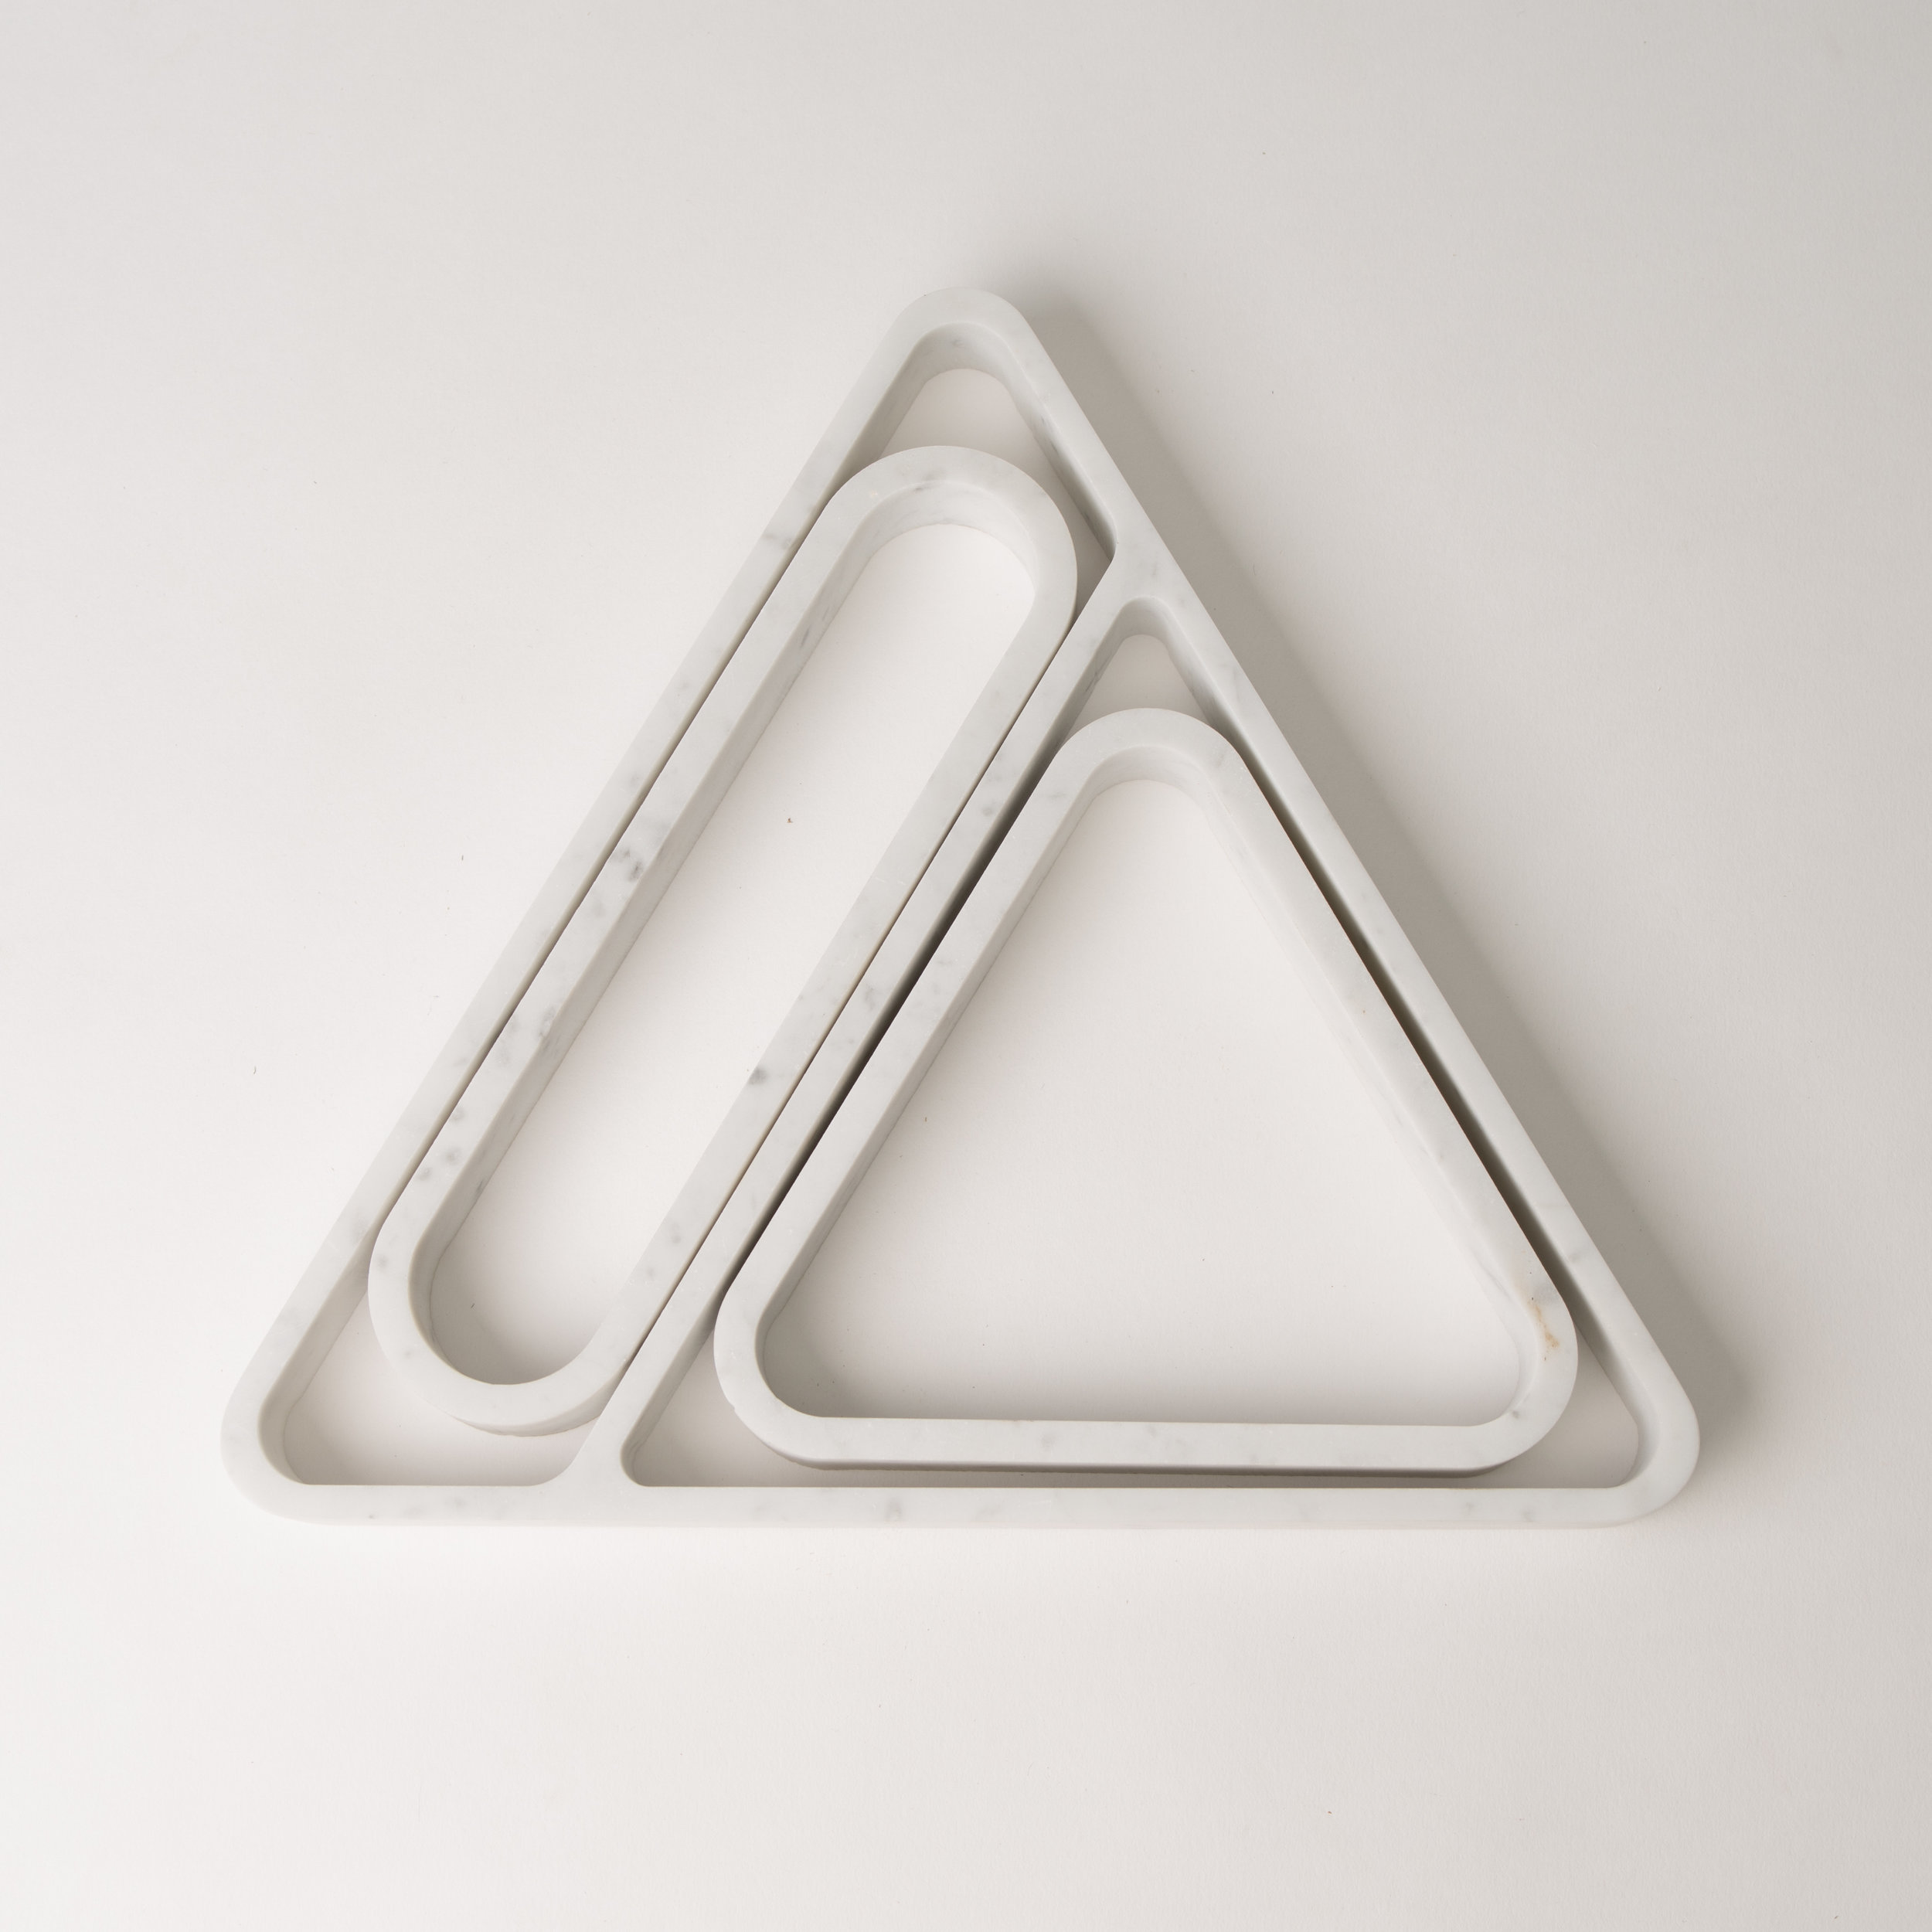 Smaller trays offset from the larger shapes maximizes material and cuts down on waste. -